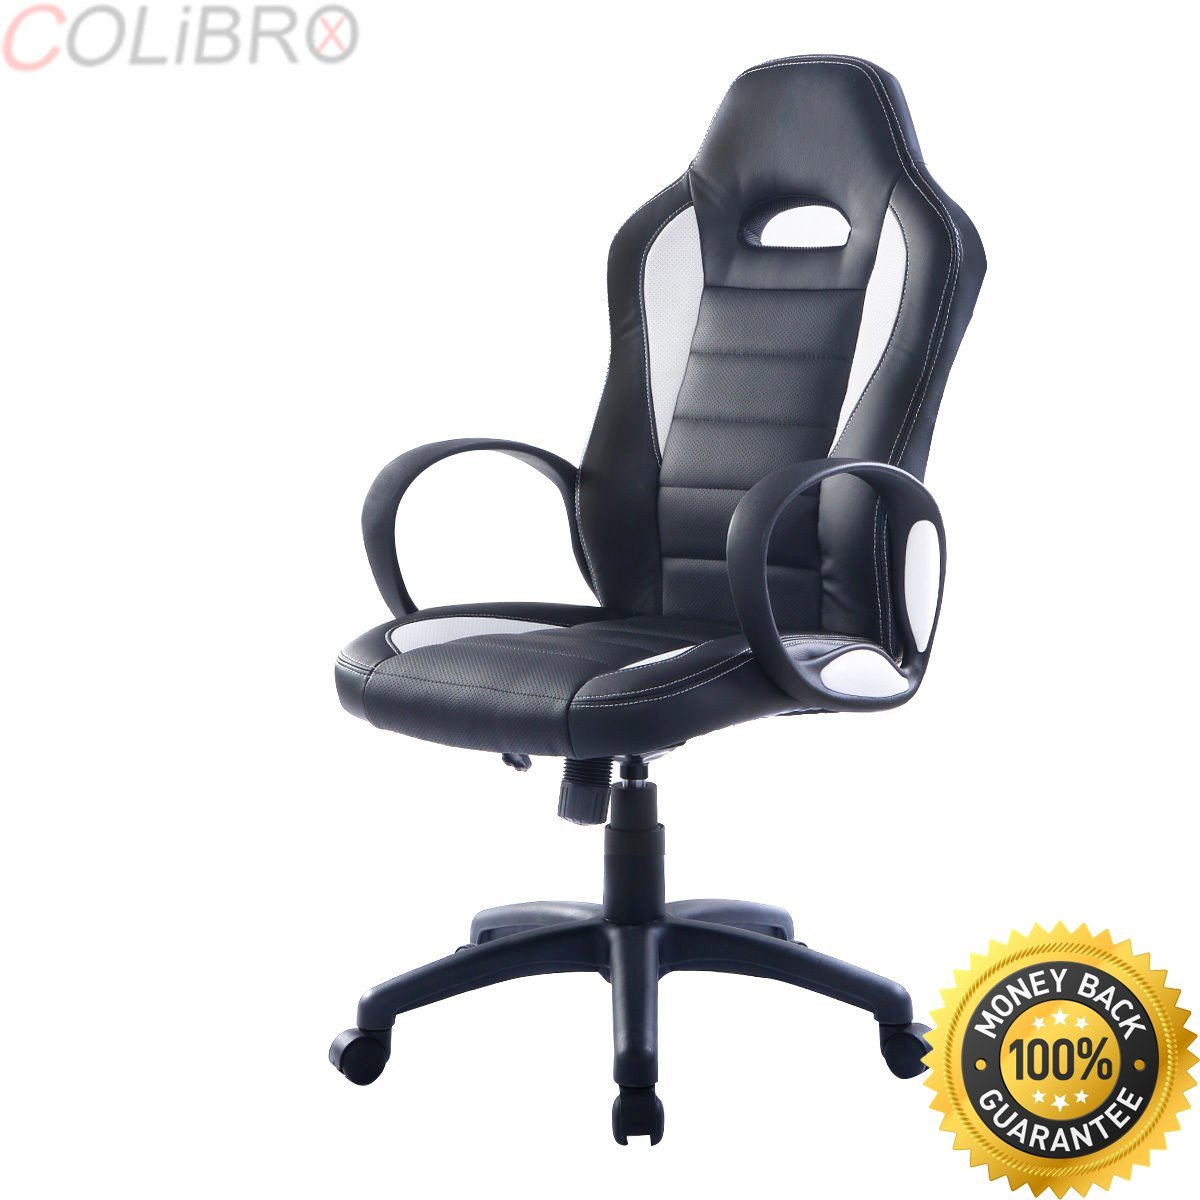 COLIBROX--New PU Leather High Back Executive Race Car Style Bucket Seat Office Desk Chair. high back race car style bucket seat office desk chair gaming chair. amazon bucket seat office chair.